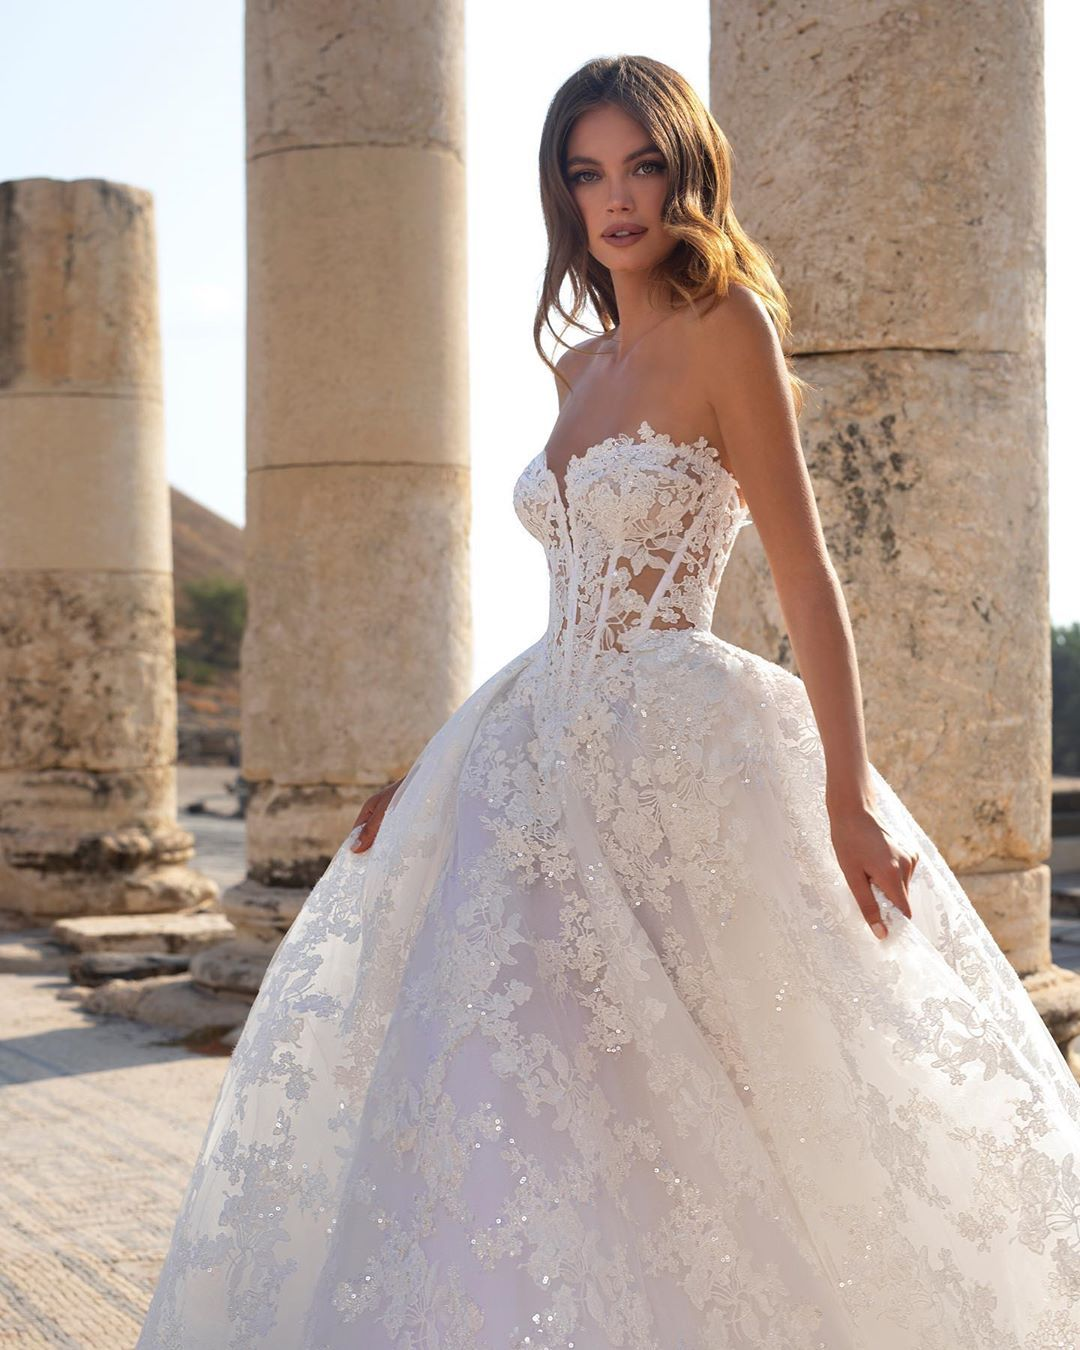 Pnina Tornai On Instagram Signature Pninatornai Corset Realcollection Style 48 Pnina Wedding Dresses Klienfeld Wedding Dresses Pnina Tornai Wedding Dress